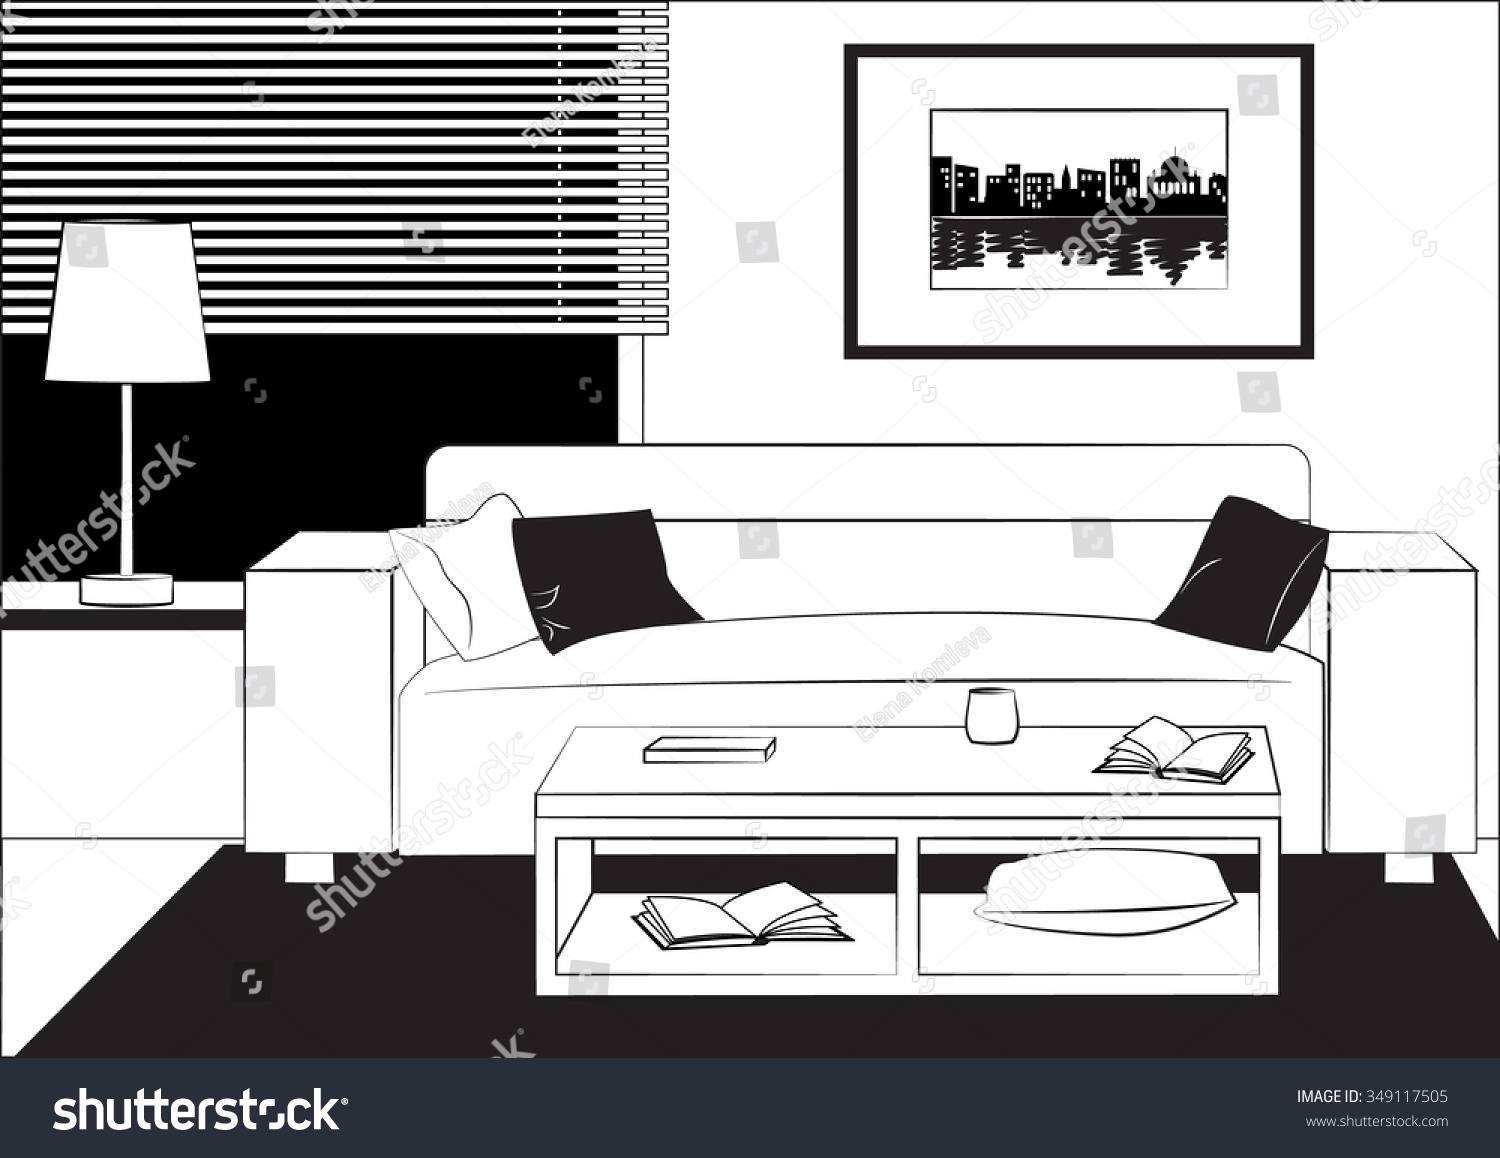 Outline Drawing Interior Living Room Sofa Stock Vector 349117505 ...